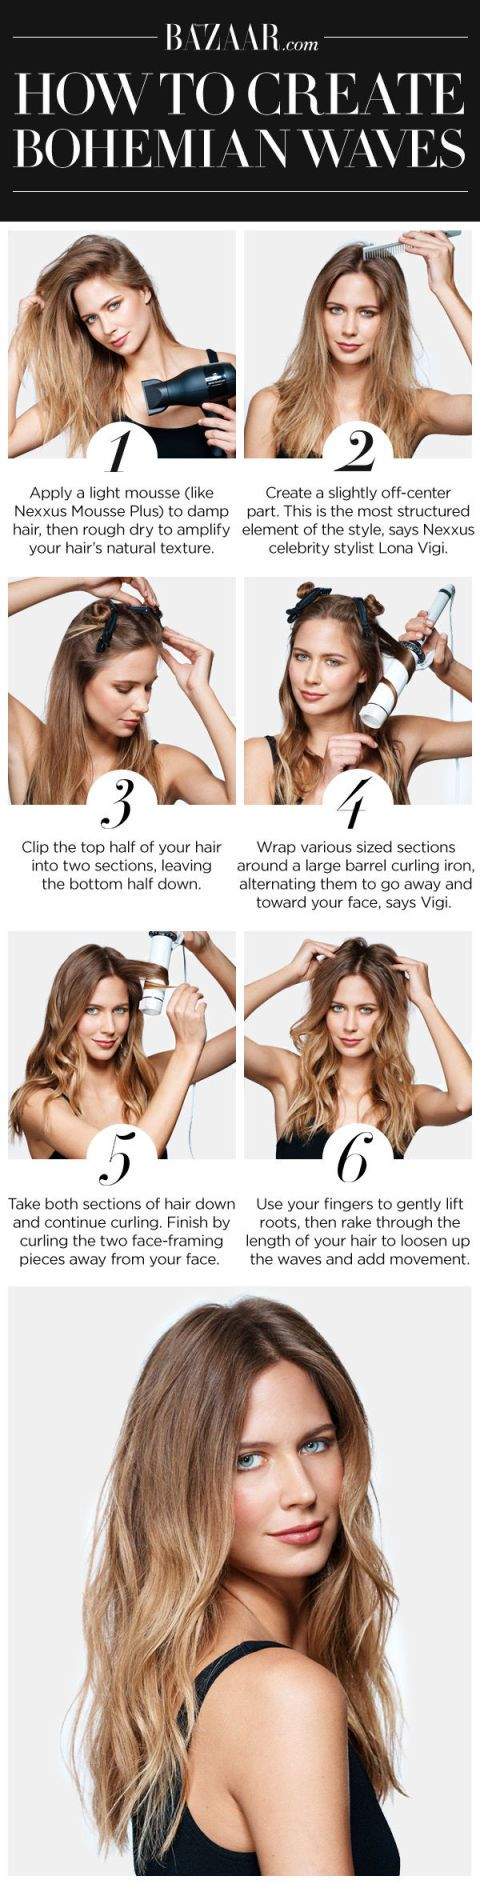 How To Get Wavy Hair 6 Step Bohemian Waves Hair Tutorial